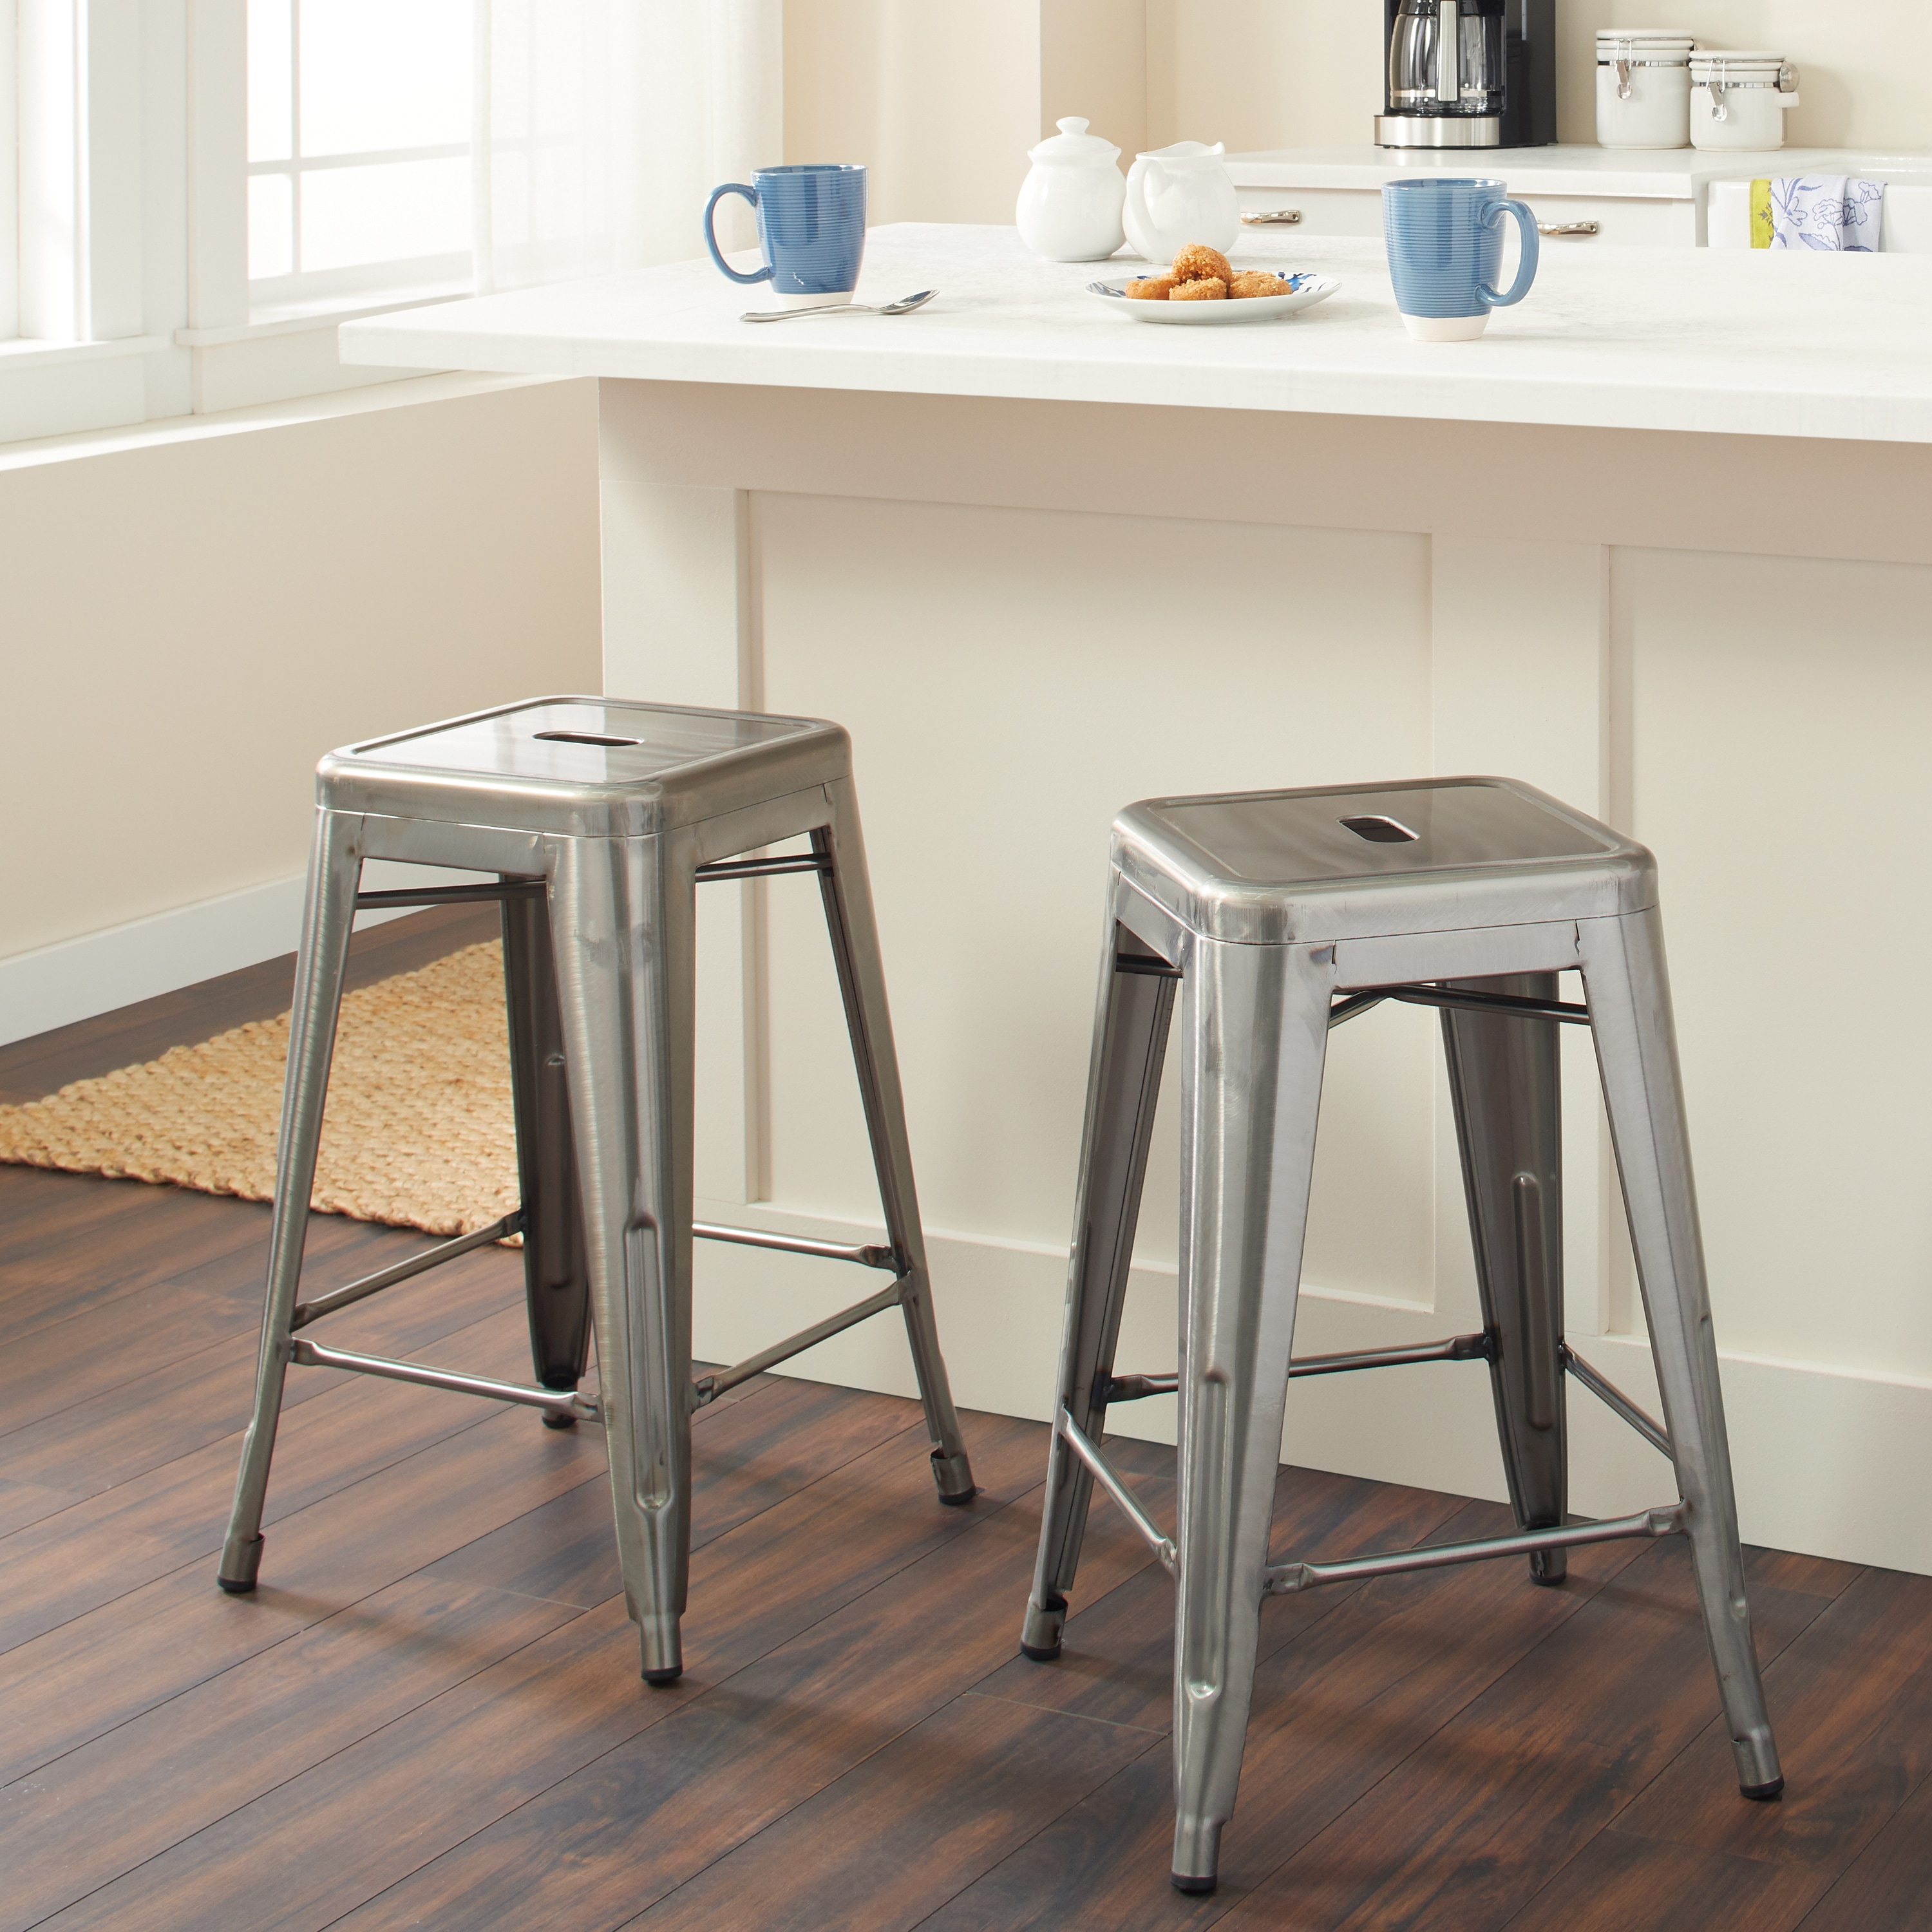 discount kitchen stools height buy counter bar stools online at overstockcom our best dining room furniture deals